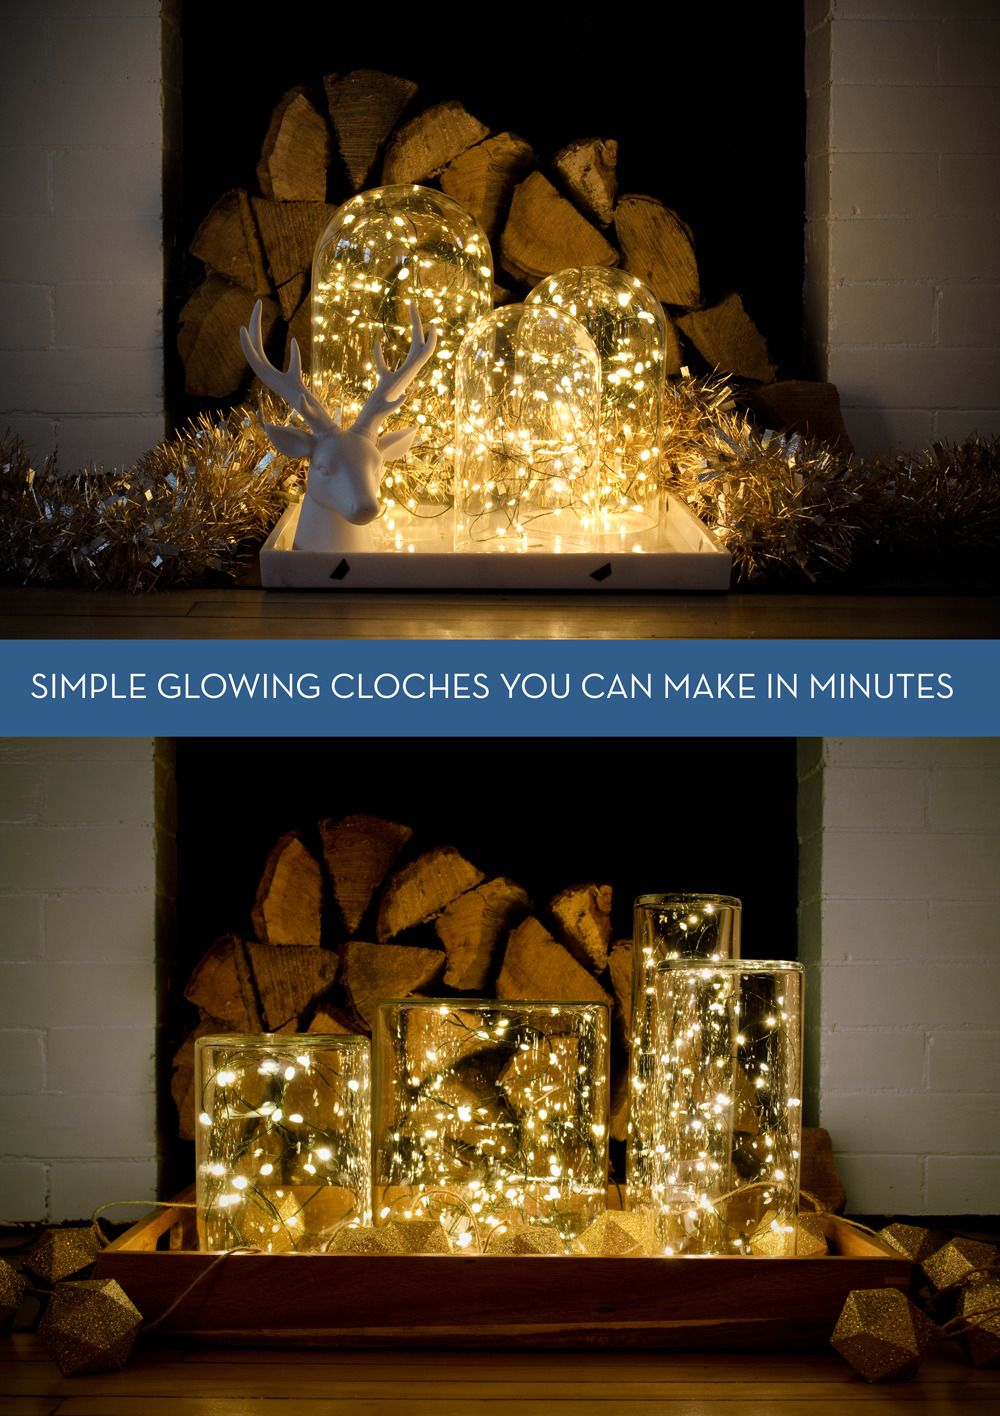 How to make simple glowing cloches in minutes diy light lights diy lighted cloches and vases you can make in minutes reviewsmspy